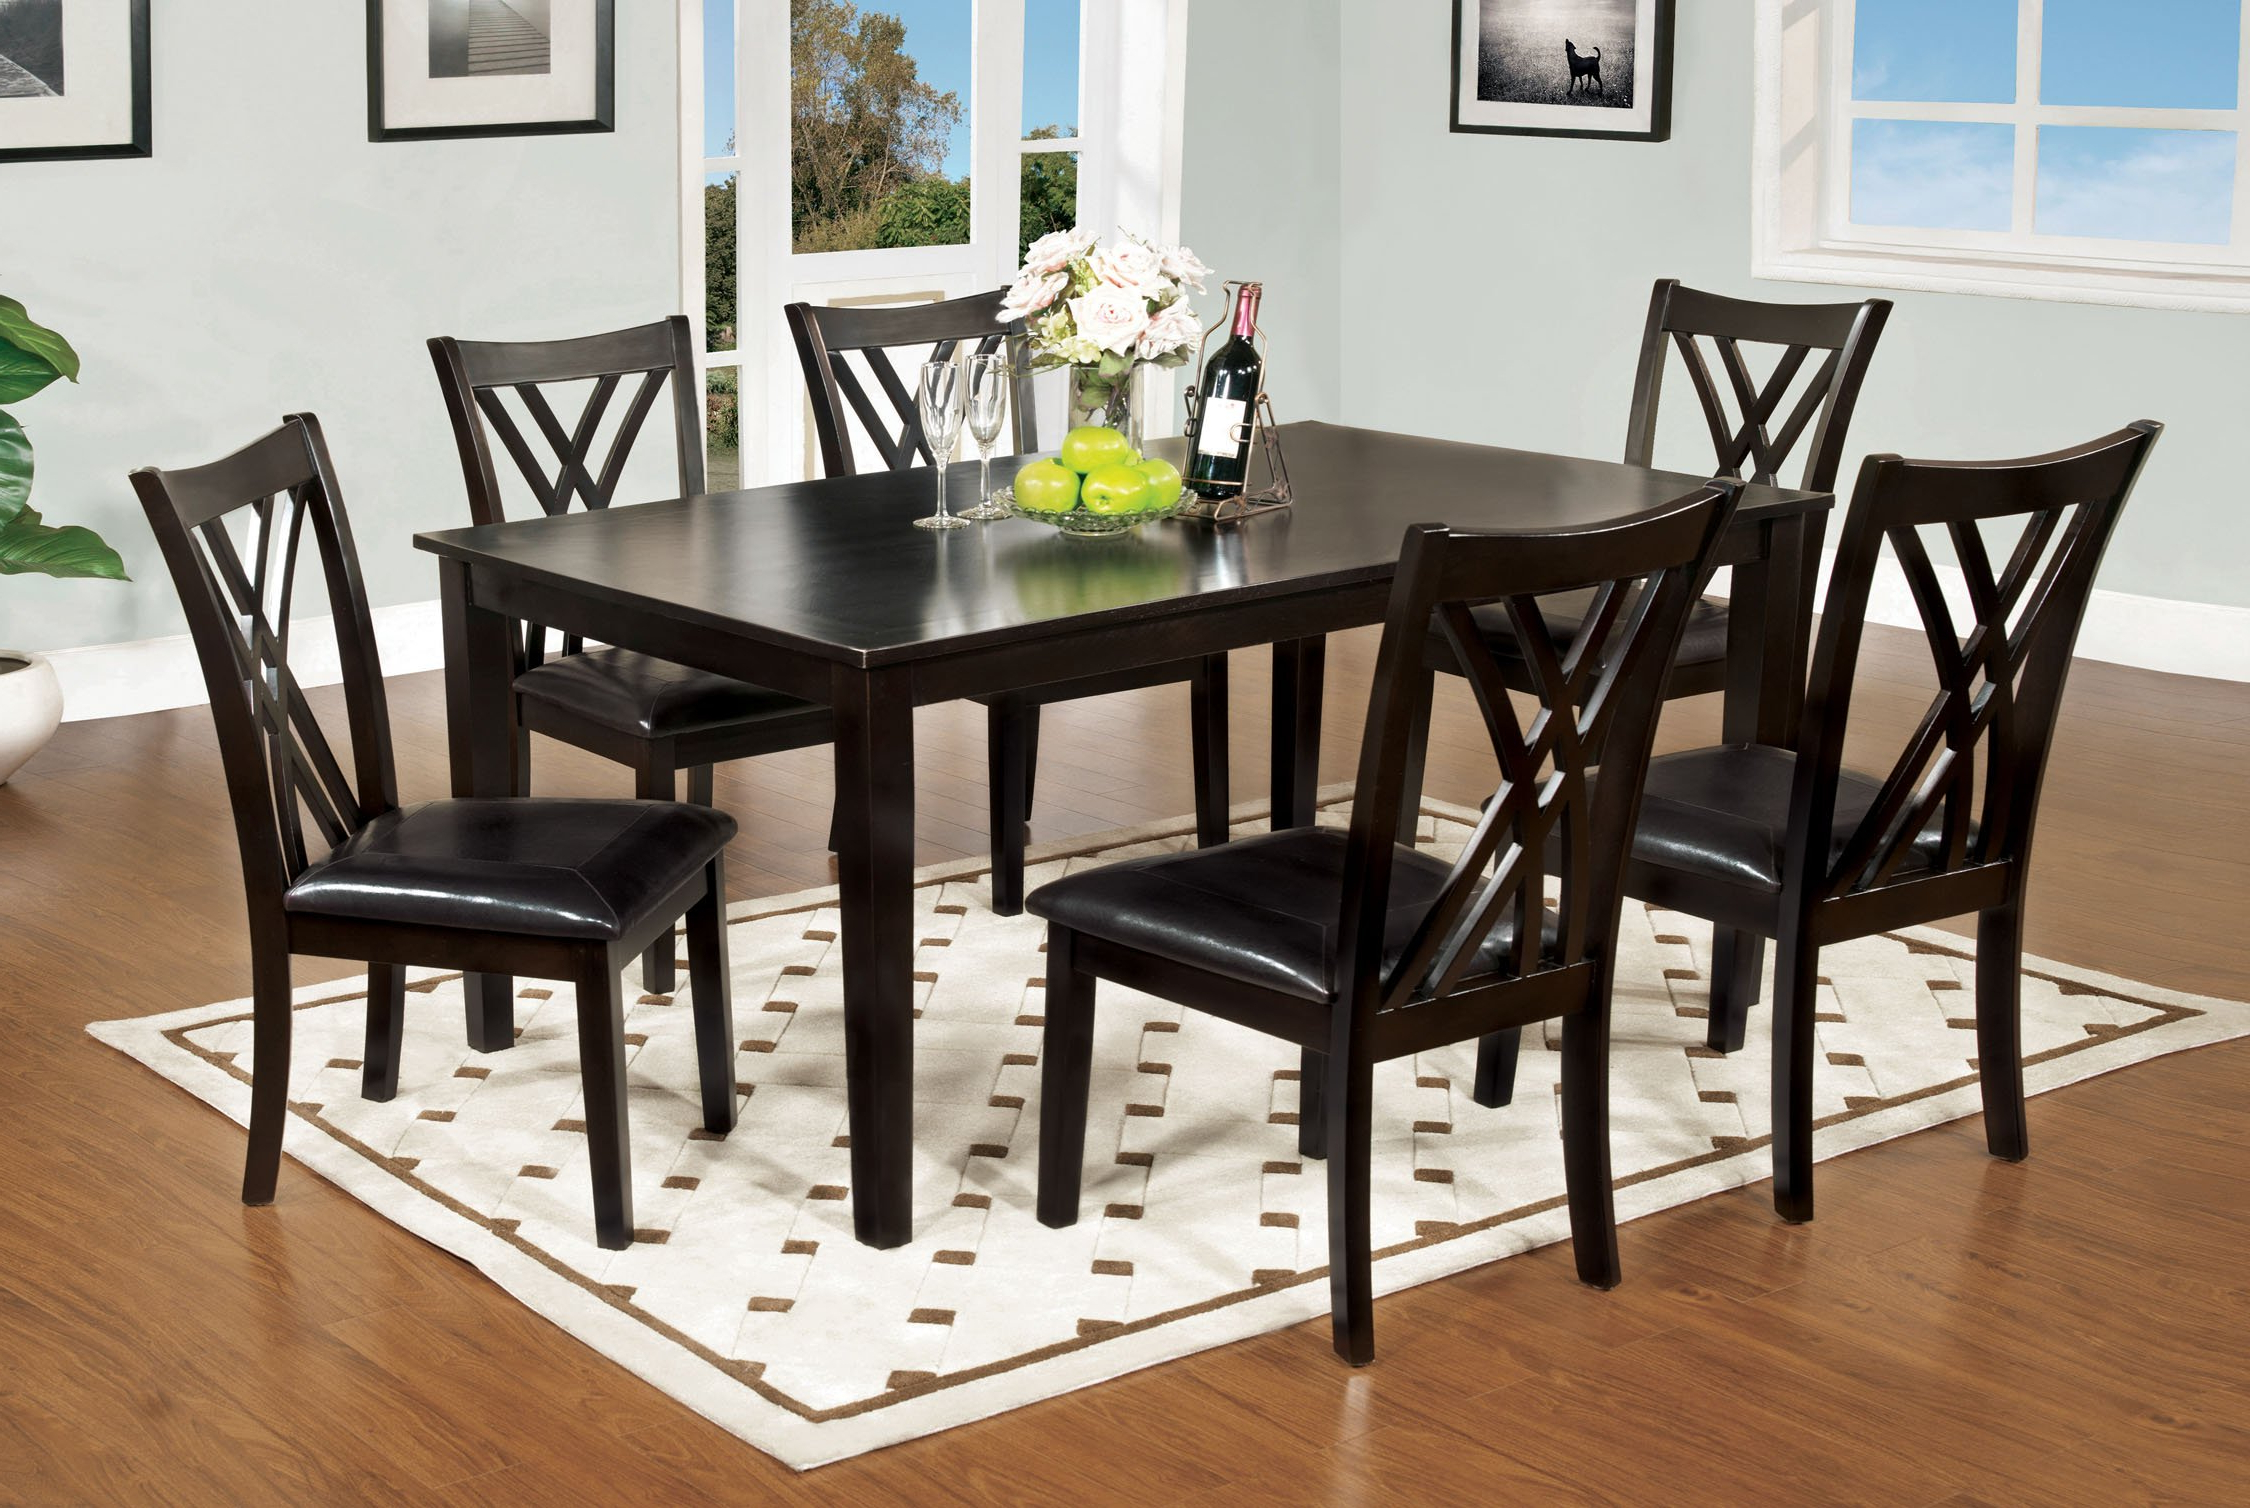 Hearst Oak Wood Dining Tables Intended For Best And Newest Cheap Espresso Dining Chair, Find Espresso Dining Chair (View 24 of 25)